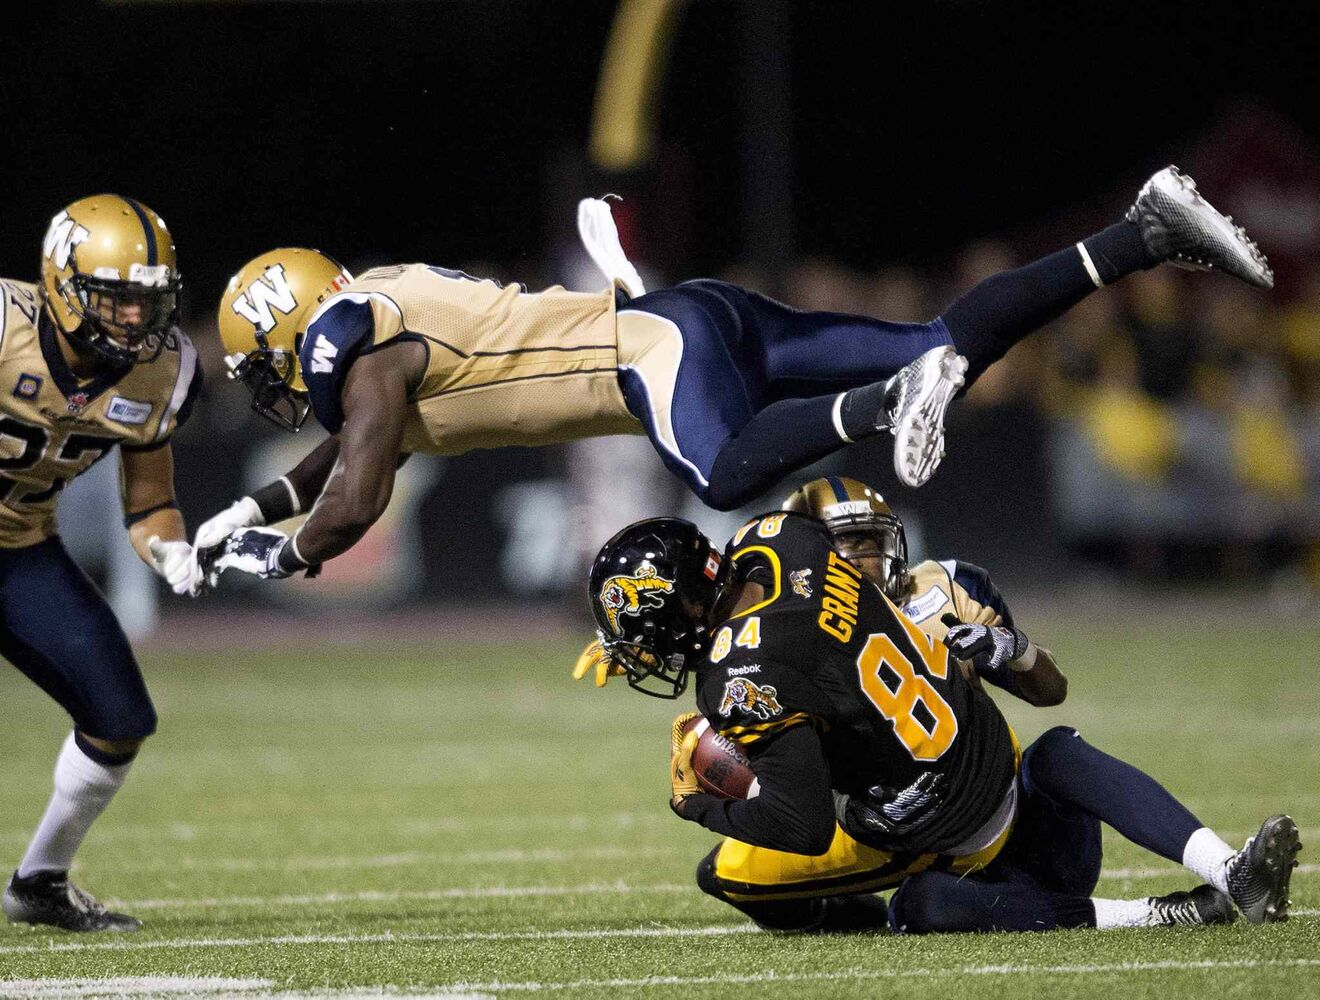 Winnipeg Blue Bombers' linebacker Ejiro Kuale leaps over Hamilton Tiger-Cats' receiver Bakan Grant, bottom right, during the second half of Thursday's game. (Nathan Denette / The Canadian Press)